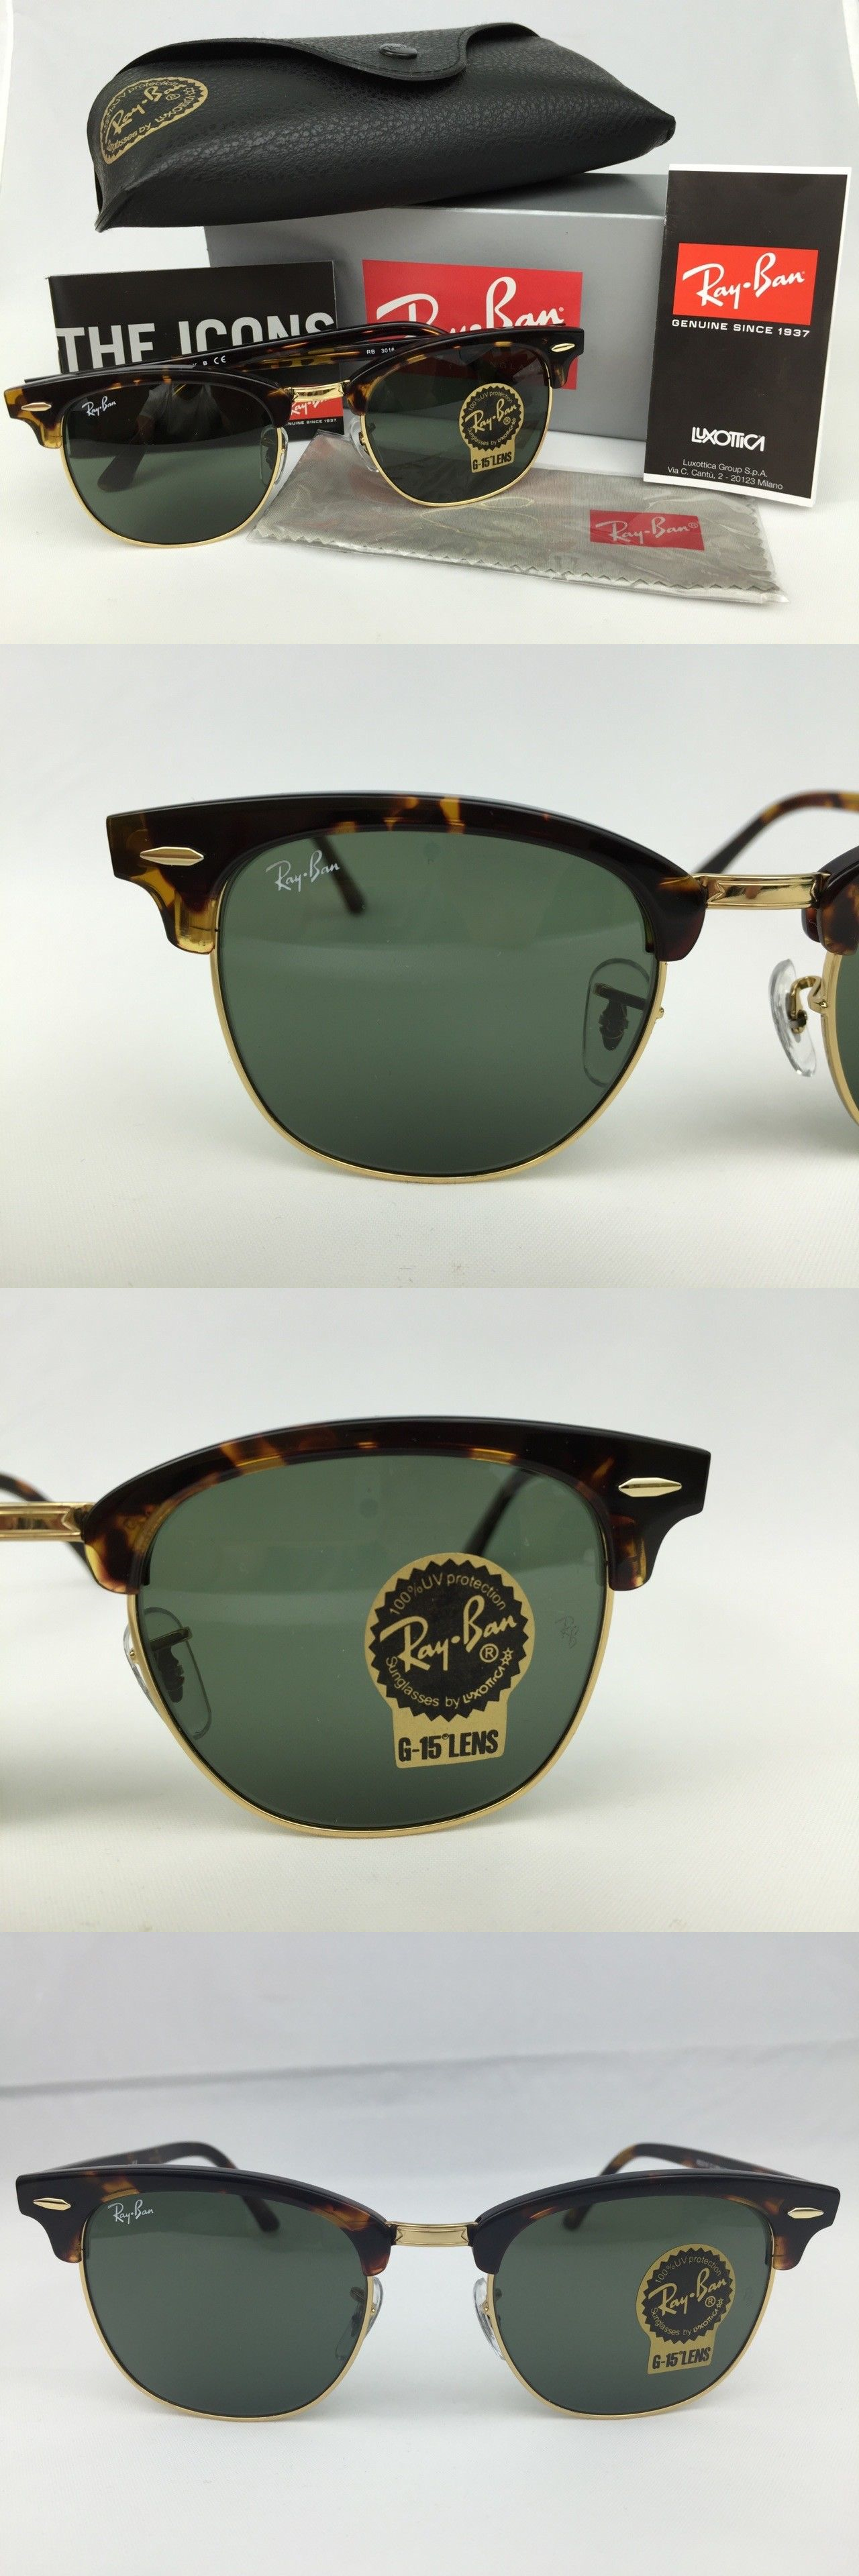 abecfdf970 netherlands sunglasses 79720 new ray ban rb 3016 clubmaster w0366 tortoise  frame g 15 green 86c23